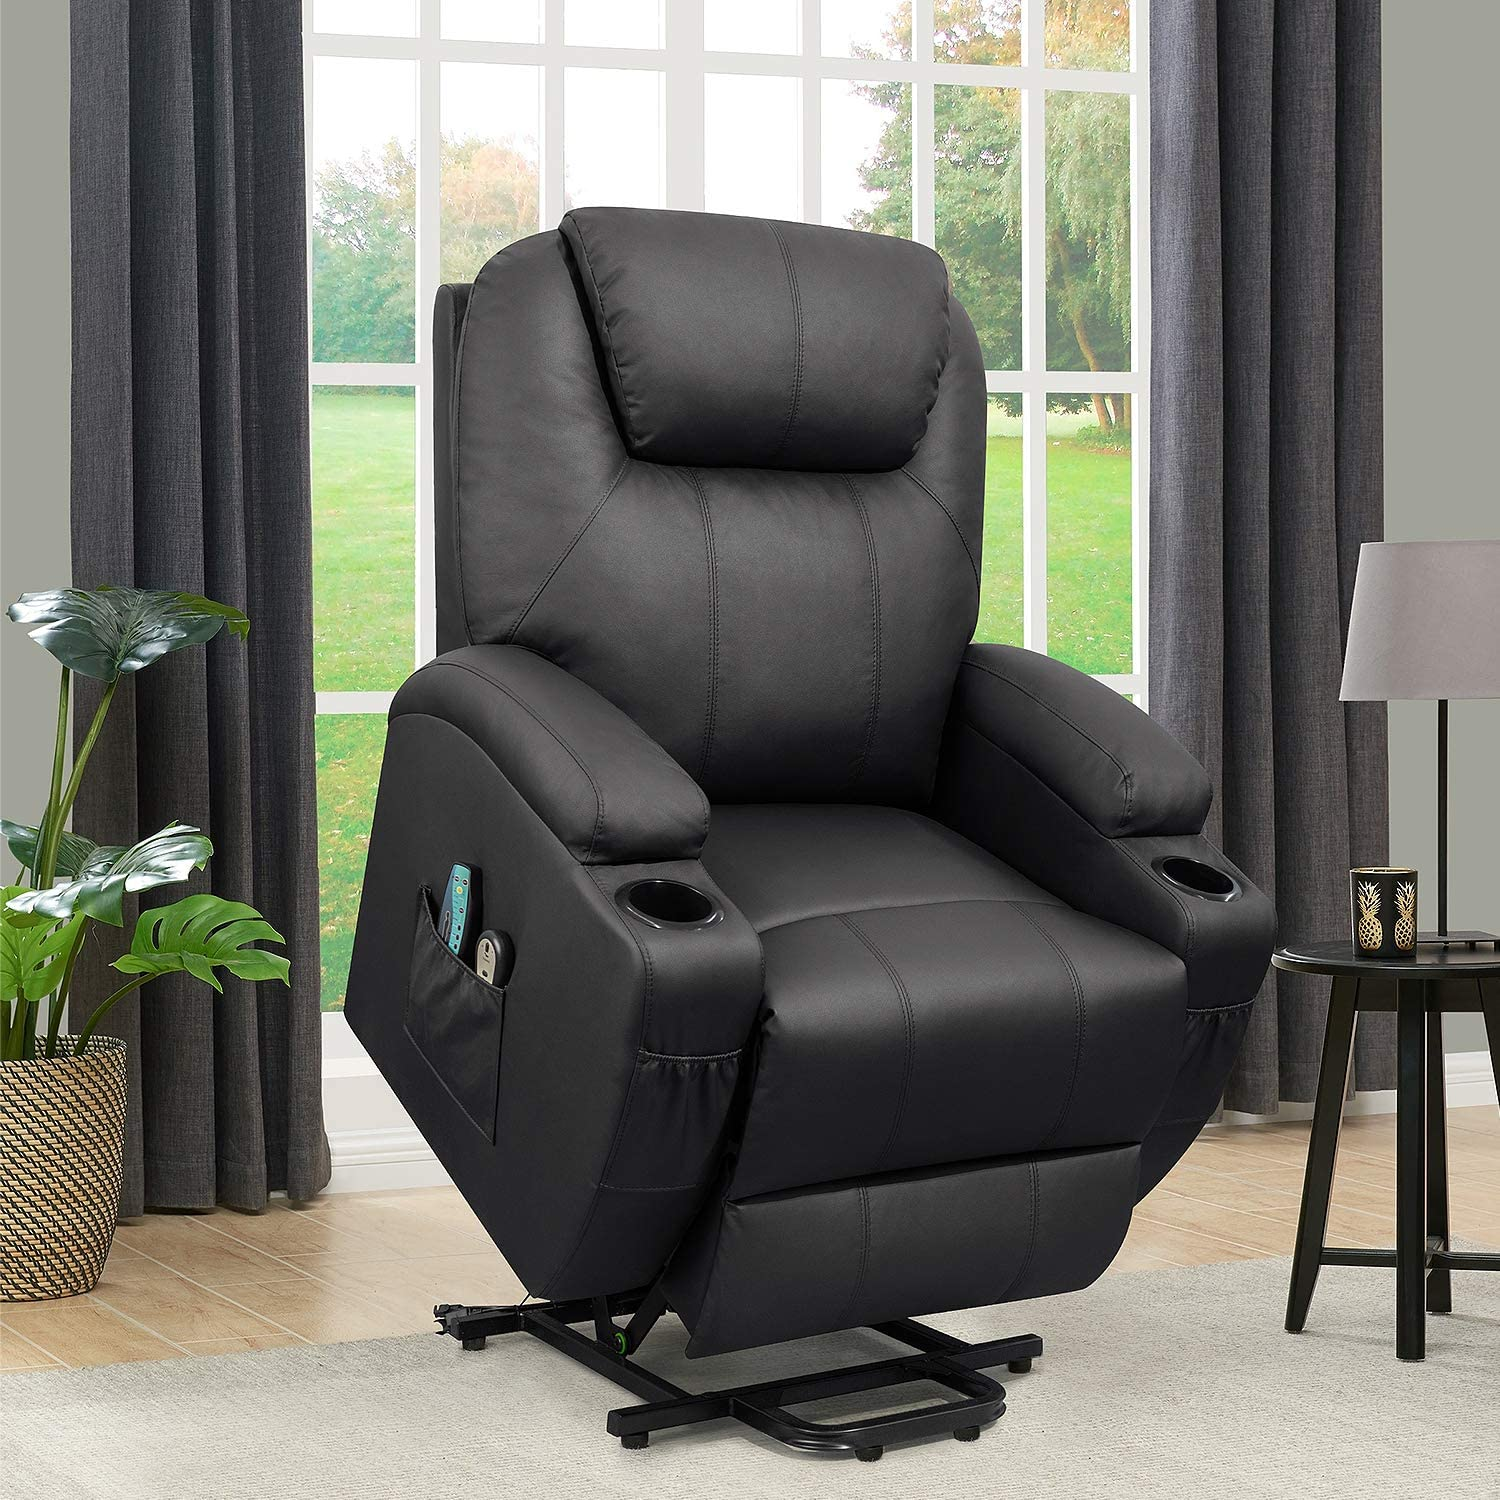 Flamaker Power Lift Recliner Chair Pu Leather For Elderly With Massage And Heating Ergonomic Lounge Chair For Living Room Classic Single Sofa With 2 Cup Holders Side Pockets Home Theater Seat